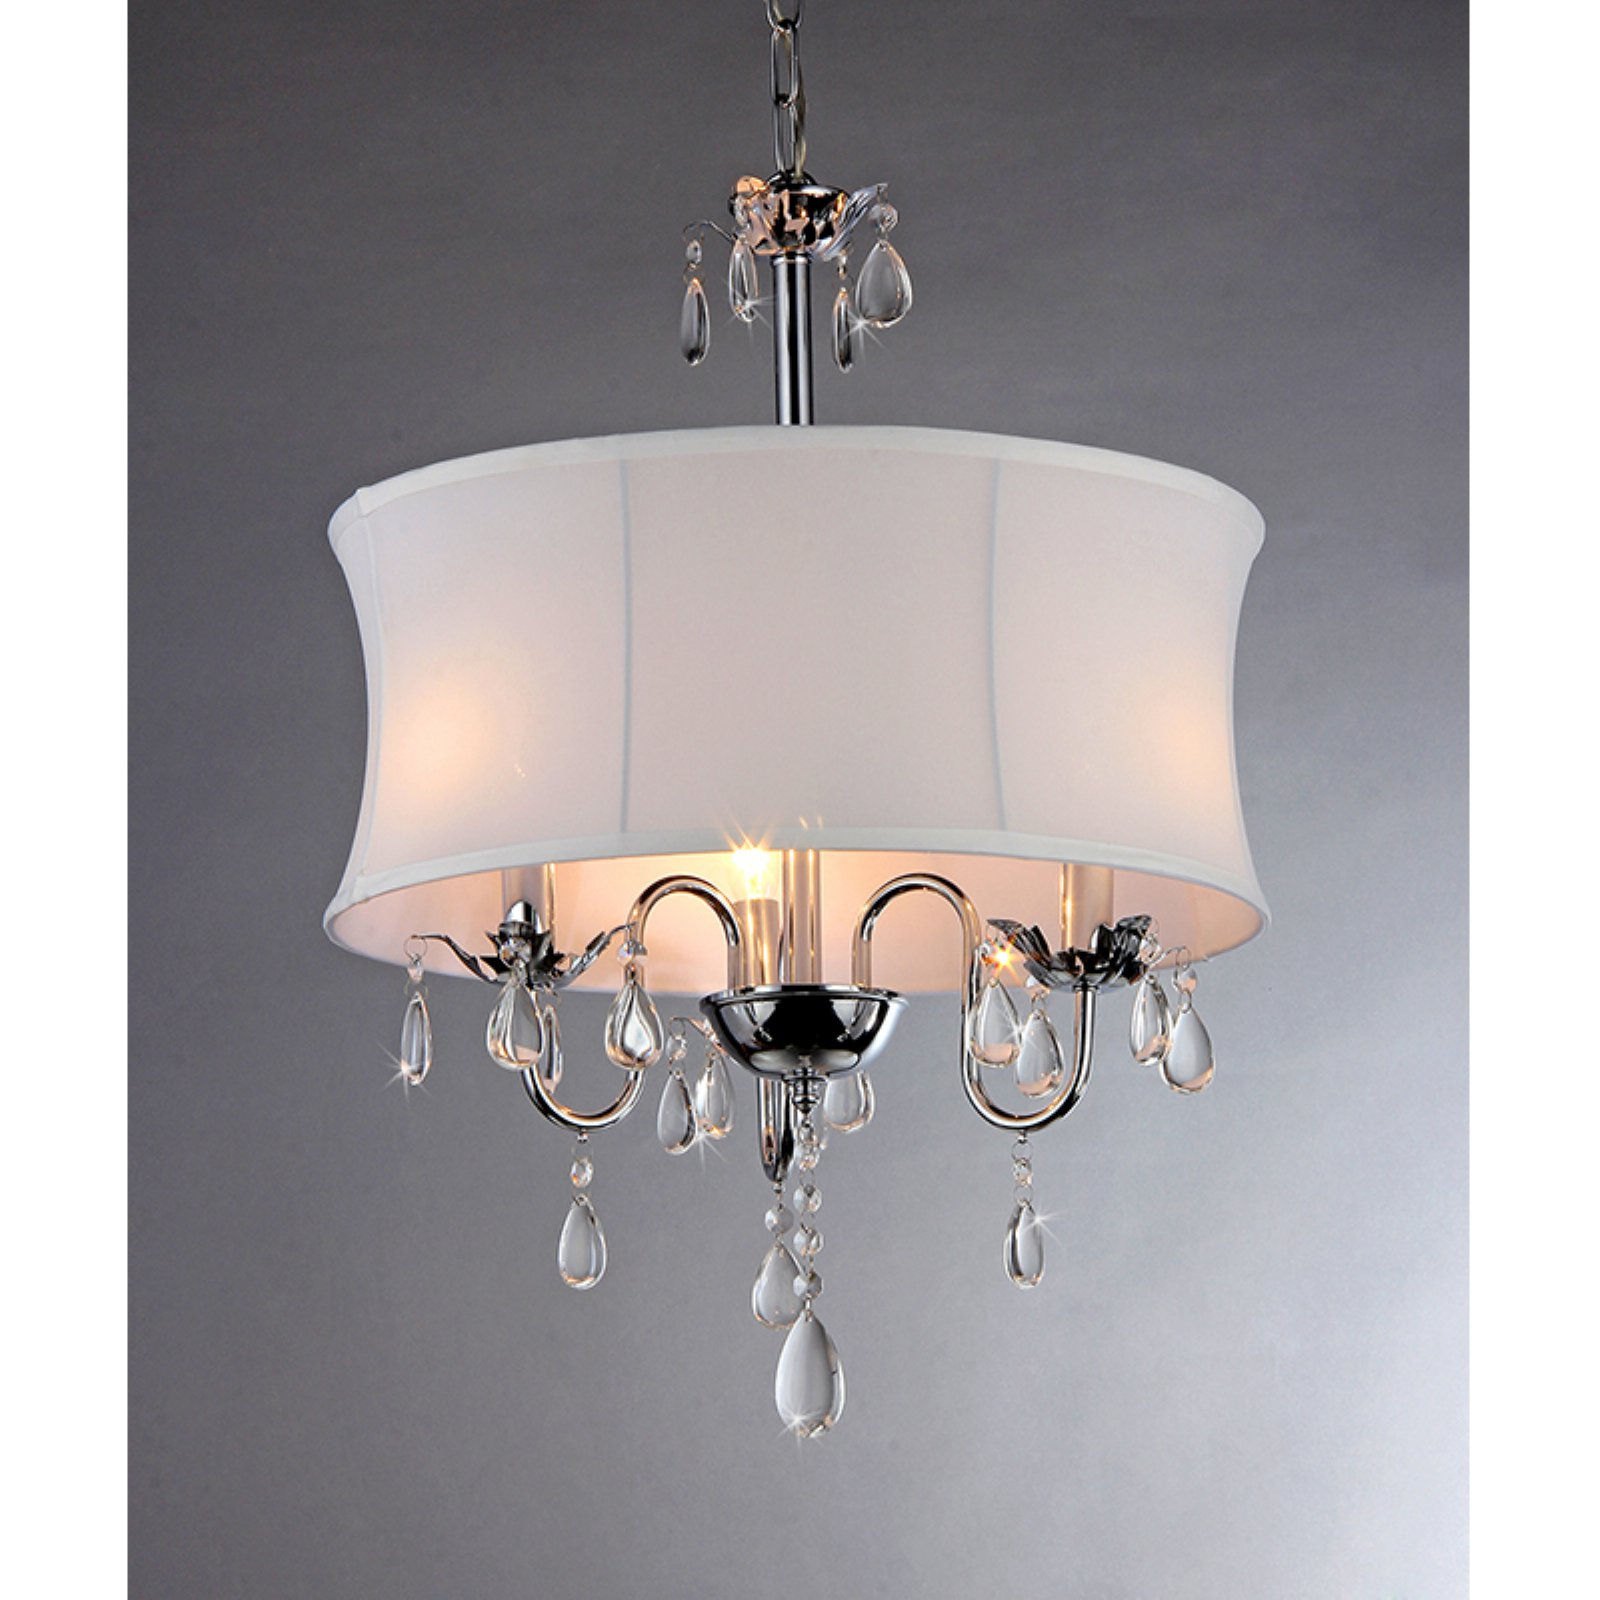 Warehouse of Tiffany Elegant RL3207 Crystal Chandelier by Warehouse of Tiffany, Inc.